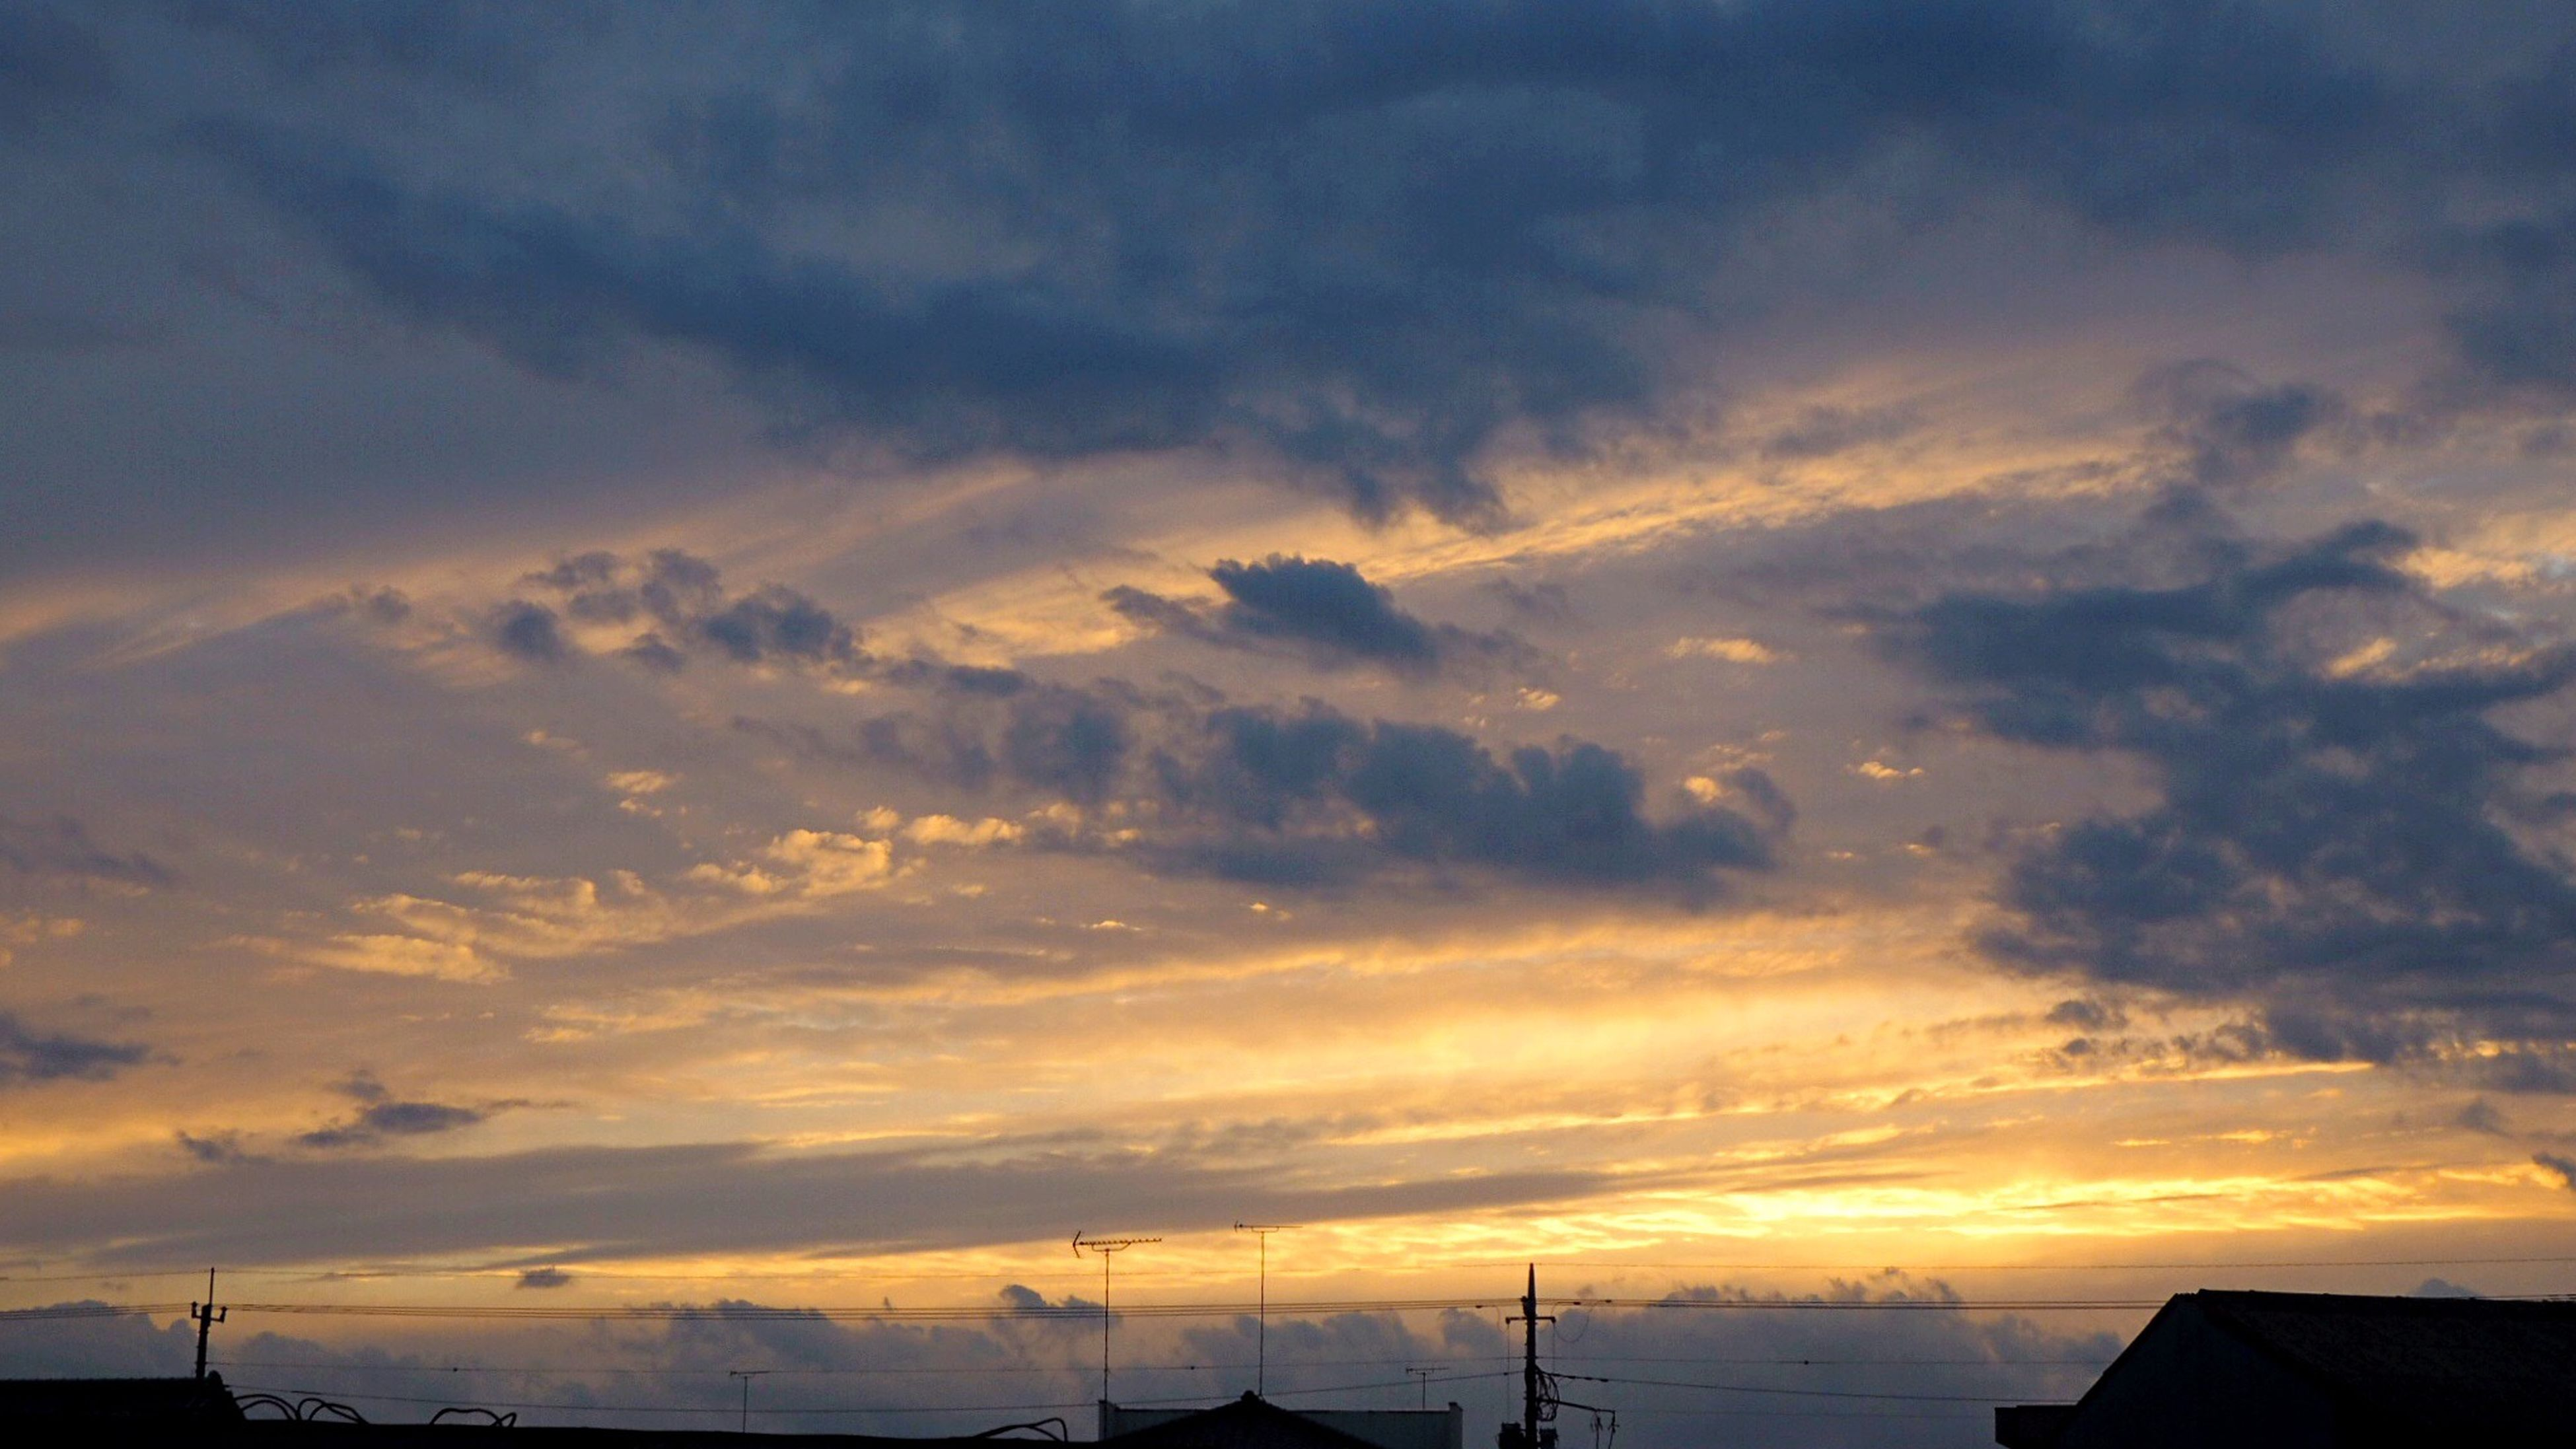 sunset, sky, silhouette, cloud - sky, orange color, beauty in nature, scenics, tranquility, tranquil scene, dramatic sky, cloudy, nature, weather, cloud, low angle view, idyllic, moody sky, built structure, outdoors, building exterior